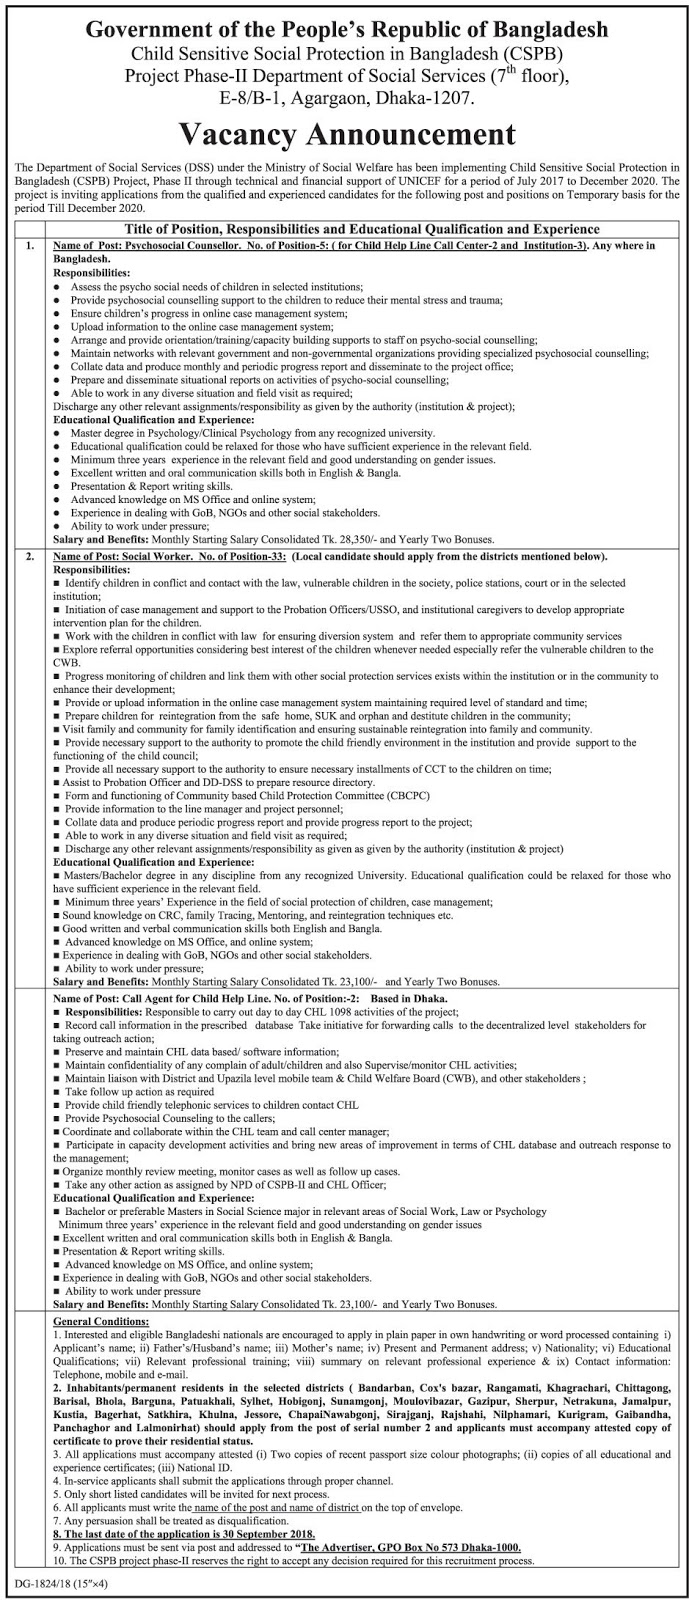 Child Sensitive Social Protection in Bangladesh (CSPB) Job Circular 2018